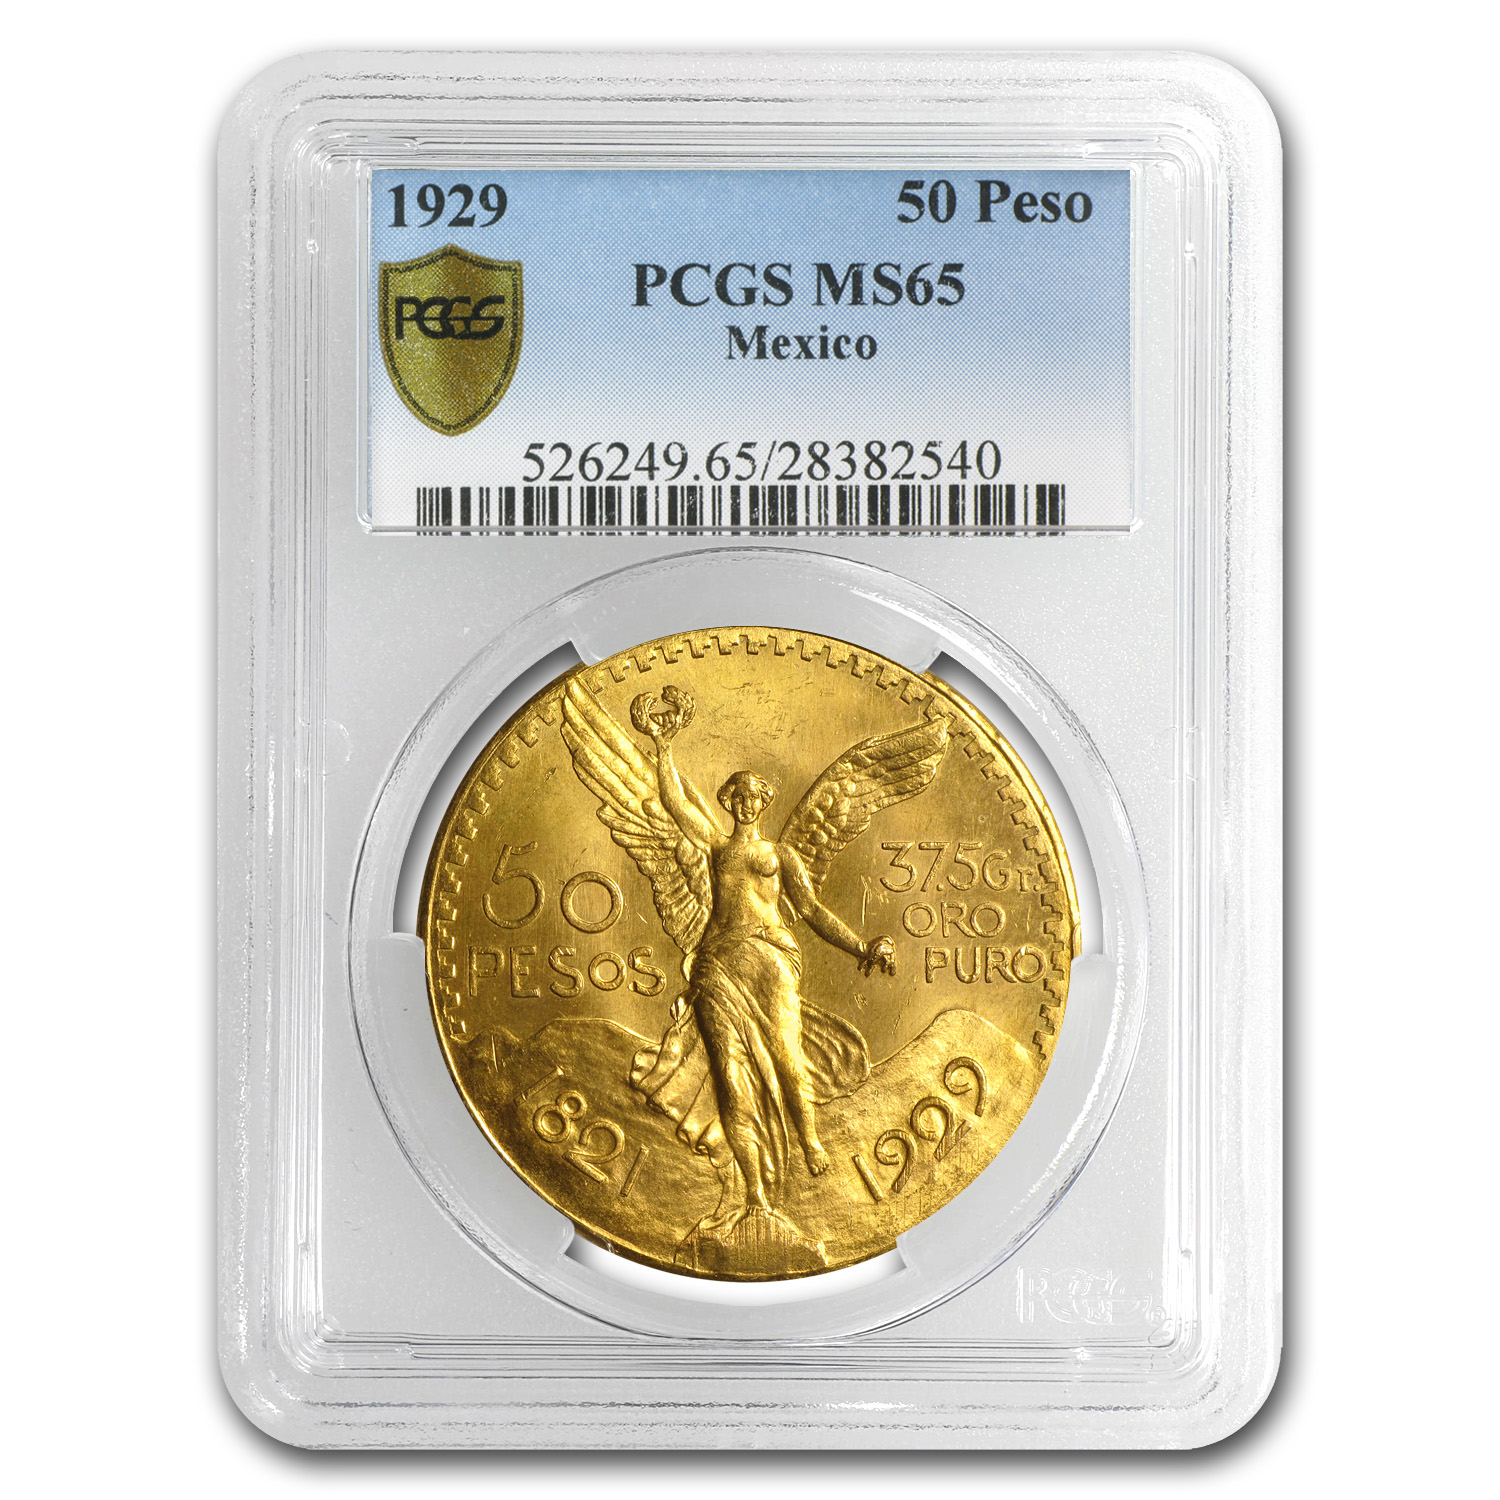 Mexico 1929 50 Pesos Gold MS-65 PCGS